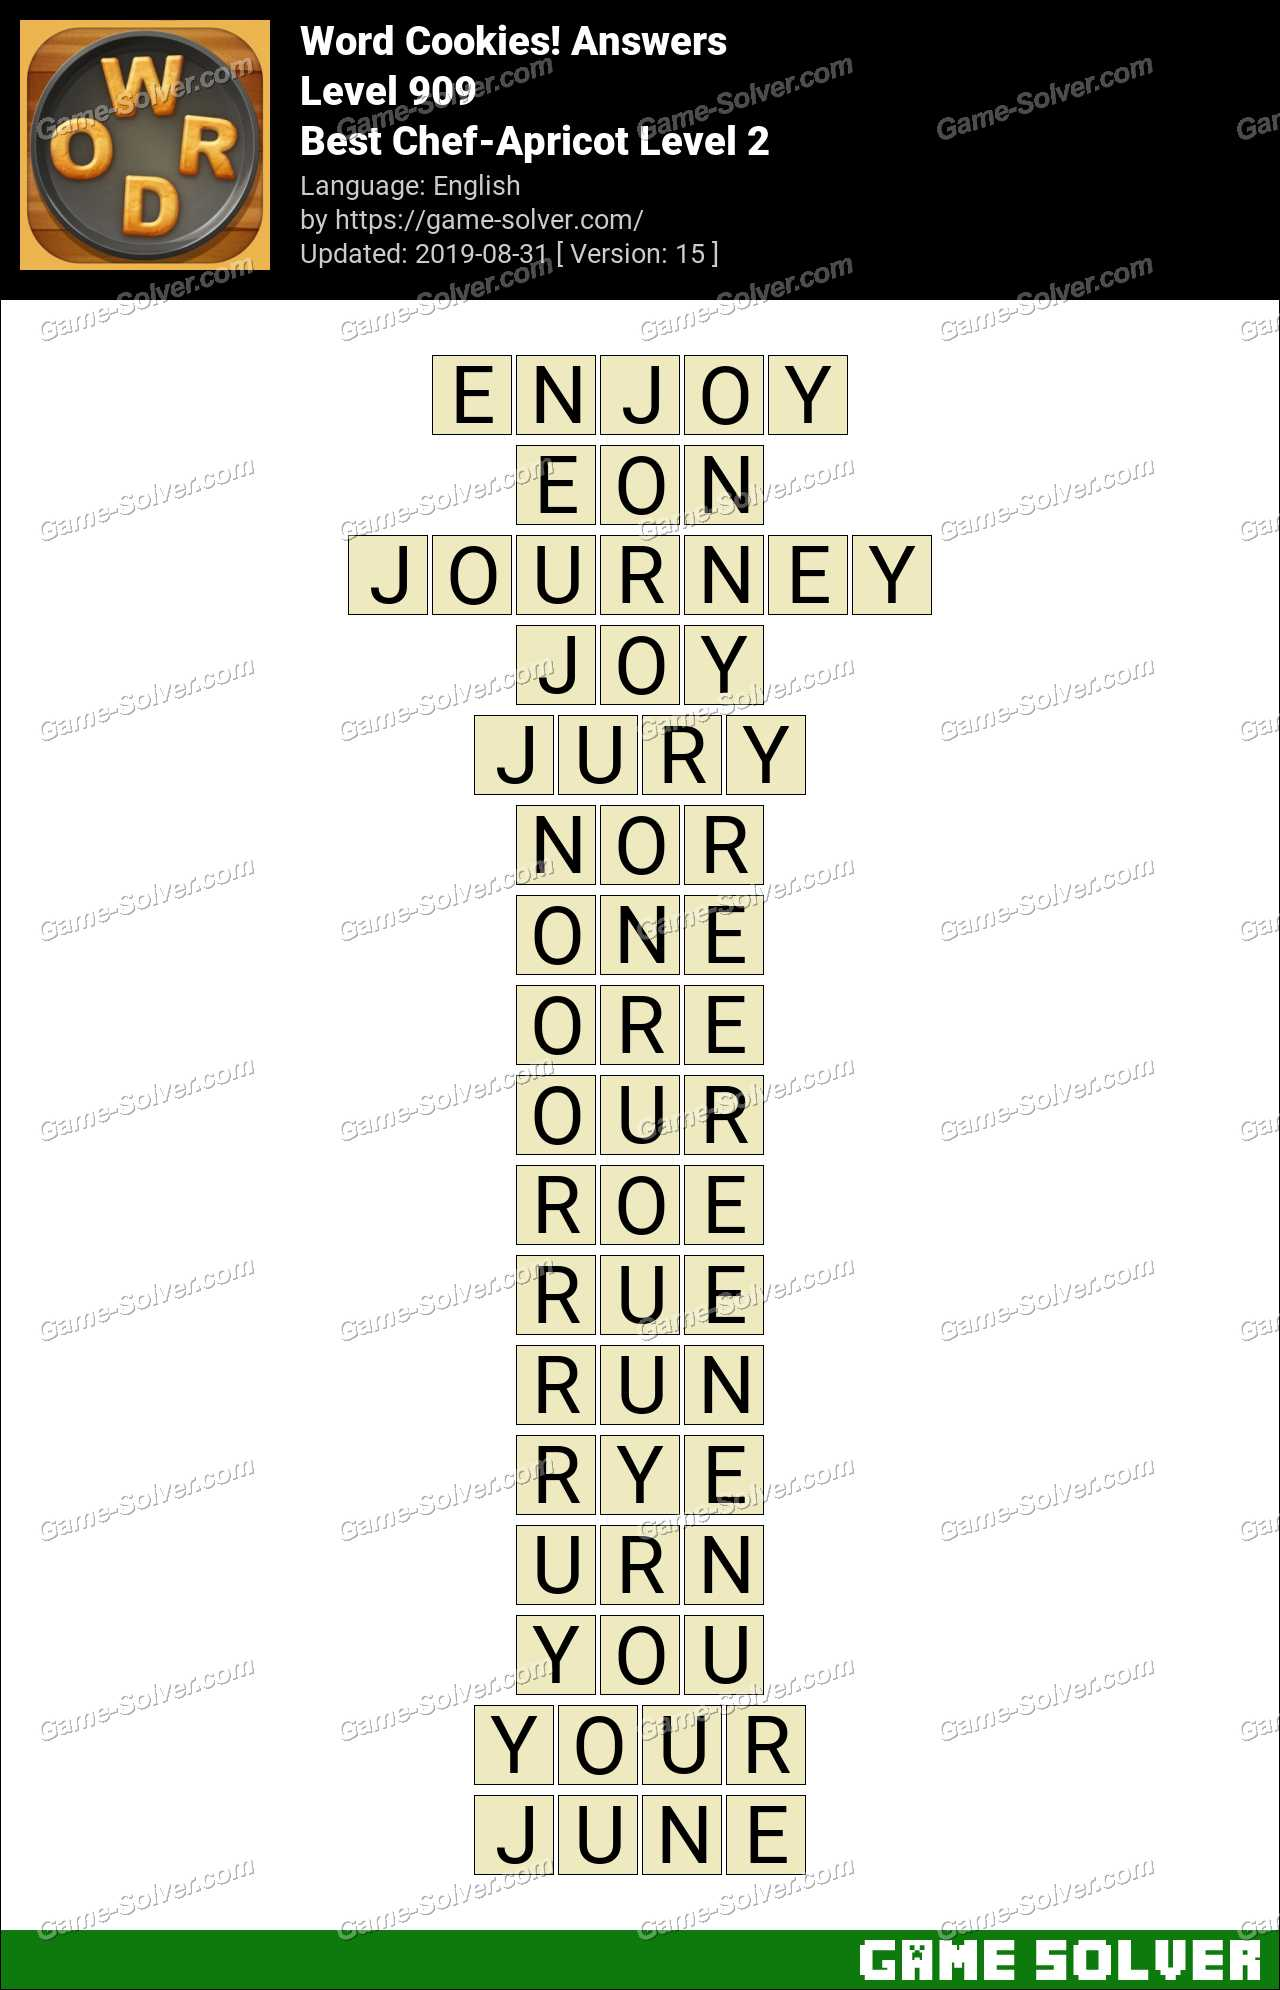 Word Cookies Best Chef-Apricot Level 2 Answers